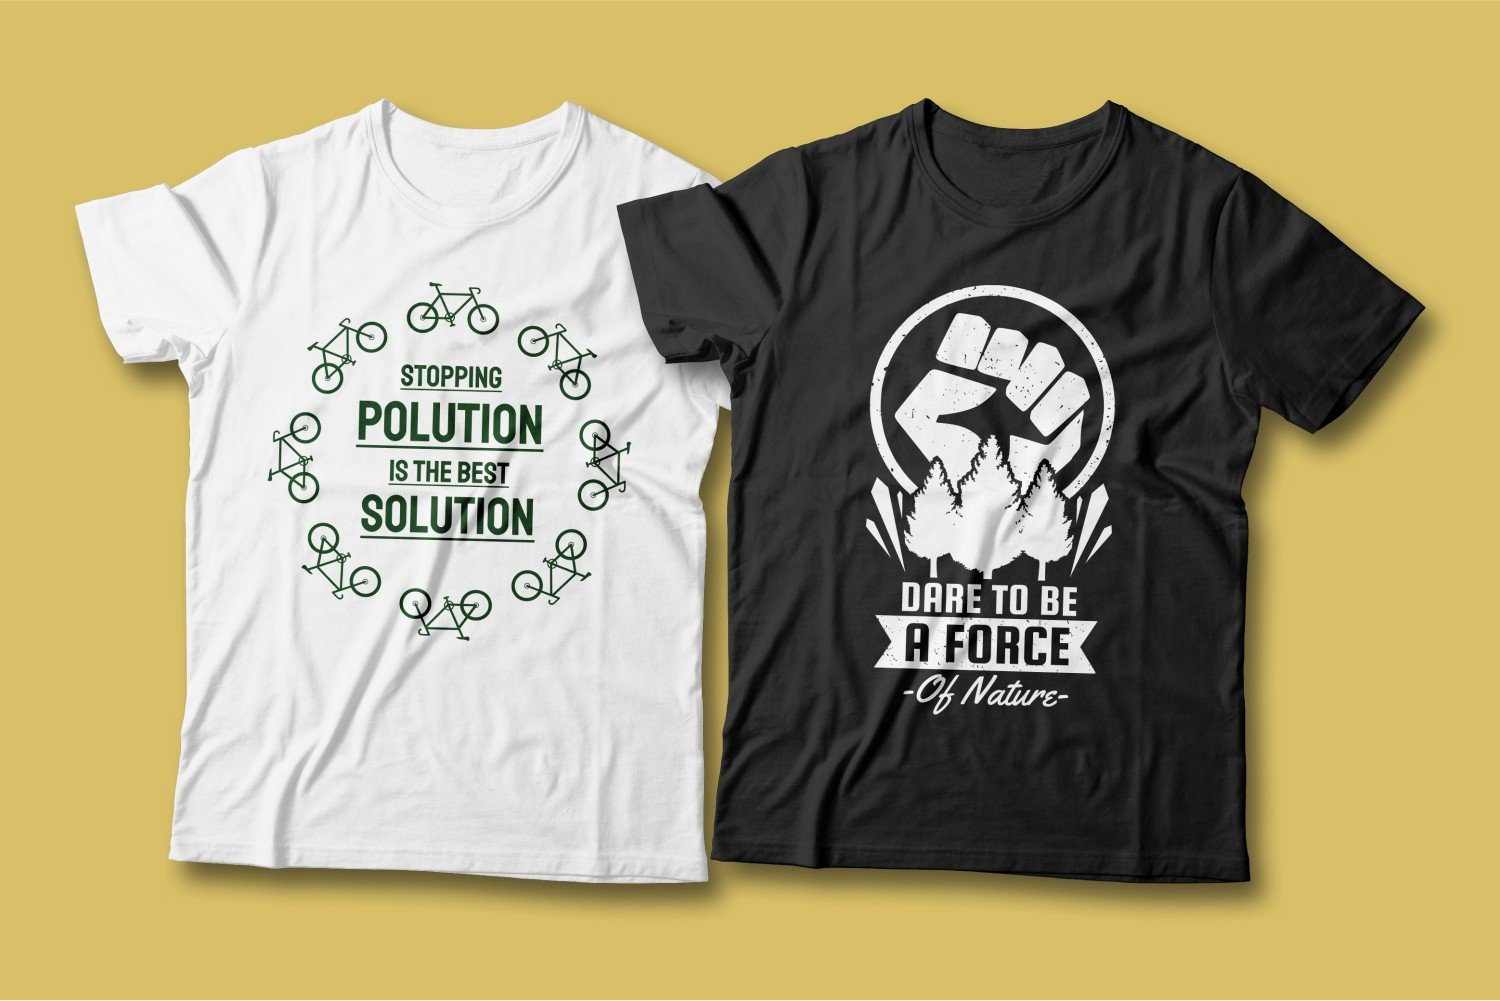 Two T-shirts - one white with green bicycles, the other black with a fist and wood.